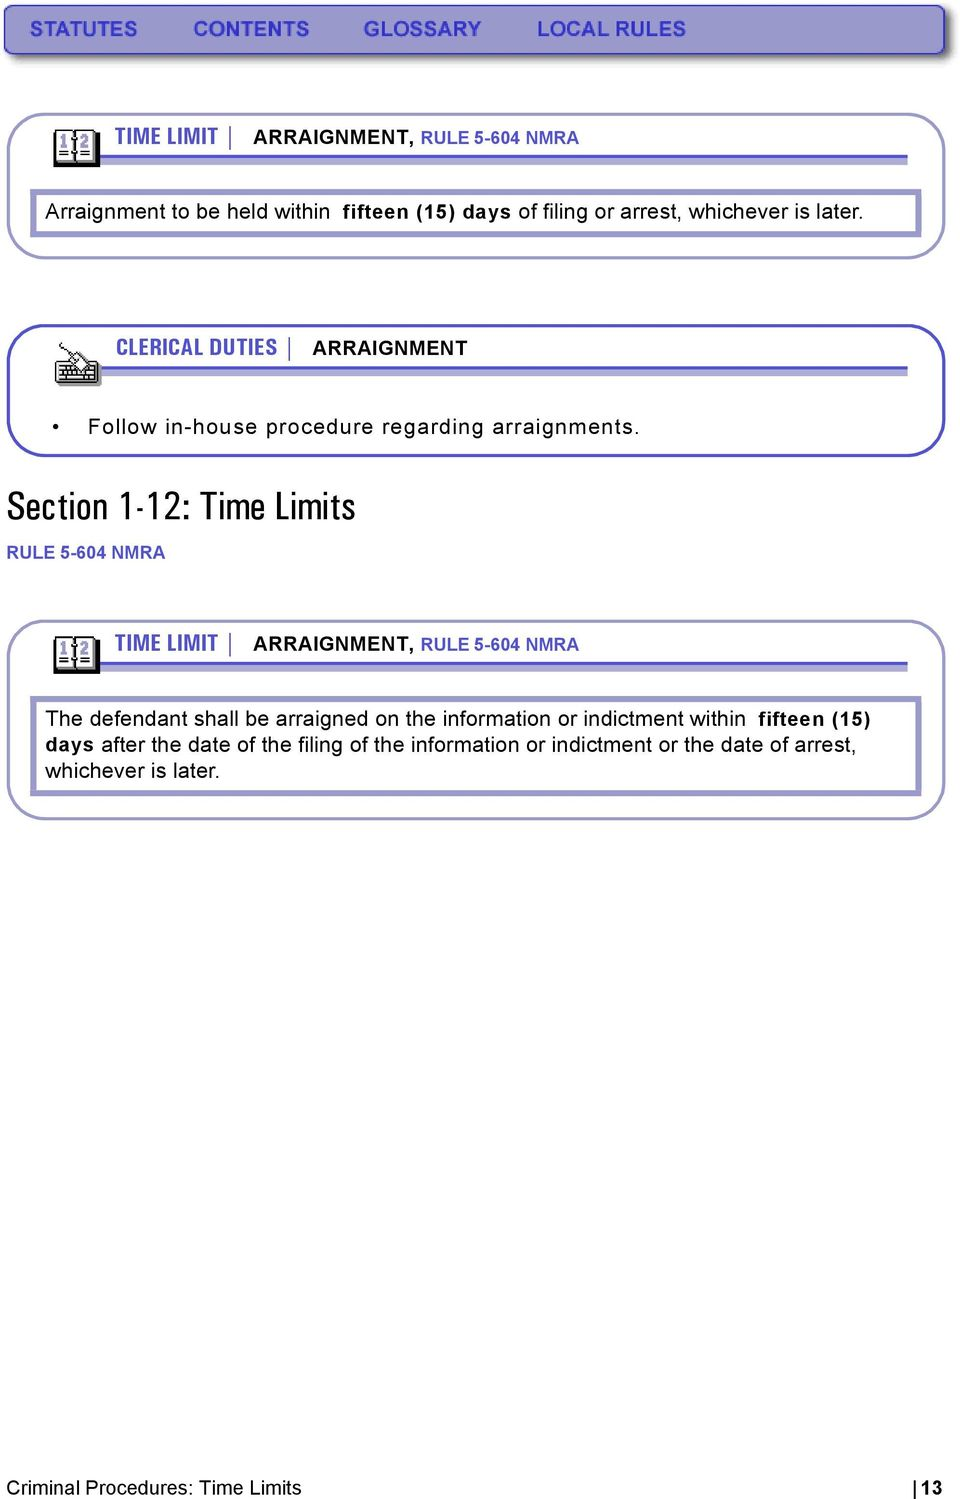 Section 1-12: Time Limits RULE 5-604 NMRA TIME LIMIT ARRAIGNMENT, RULE 5-604 NMRA The defendant shall be arraigned on the